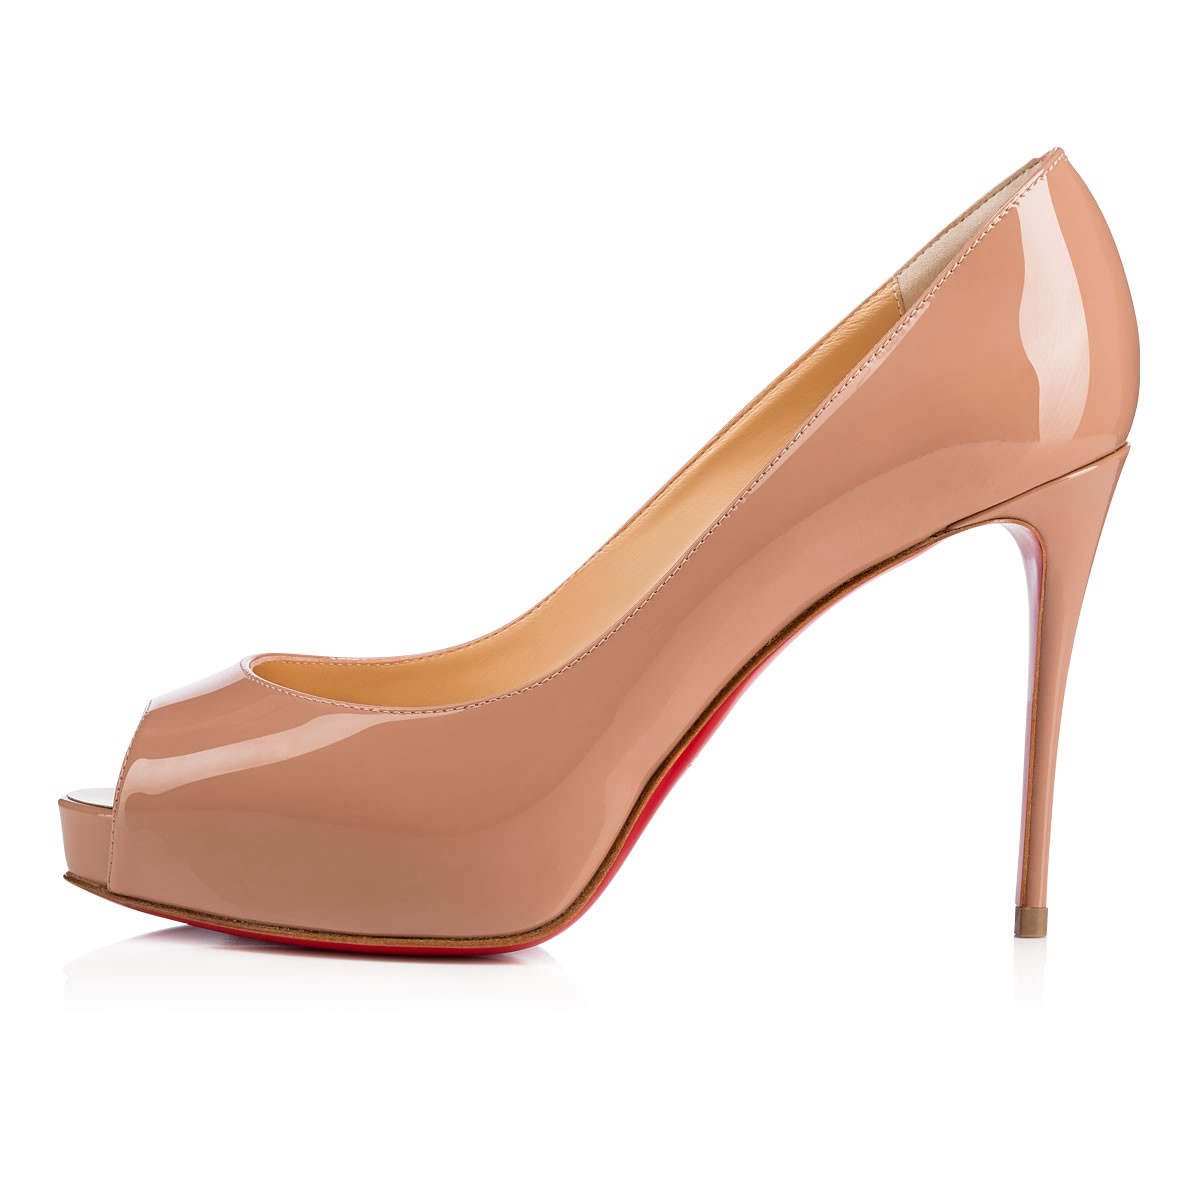 d5c8bd9180d New Very Prive 100 Nude Patent Leather - Women Shoes - Christian Louboutin